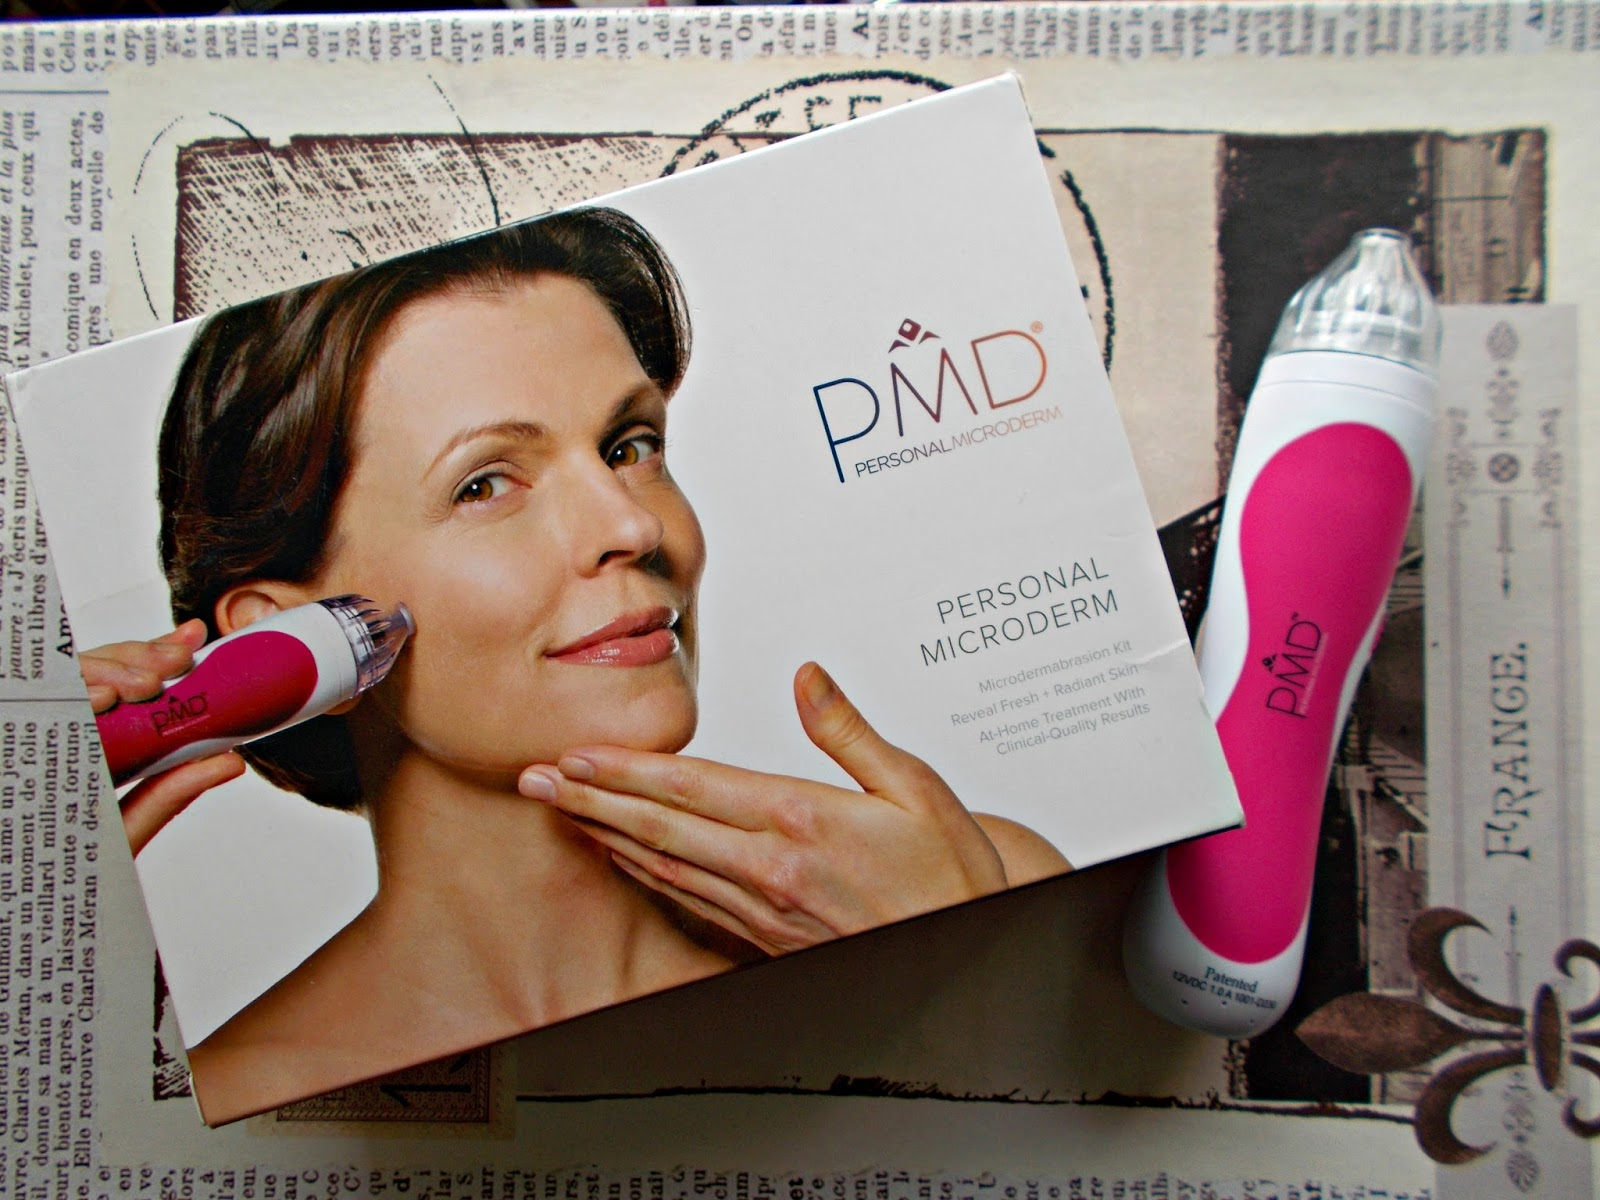 PMD Personal Microderm microbermabrasion at home review